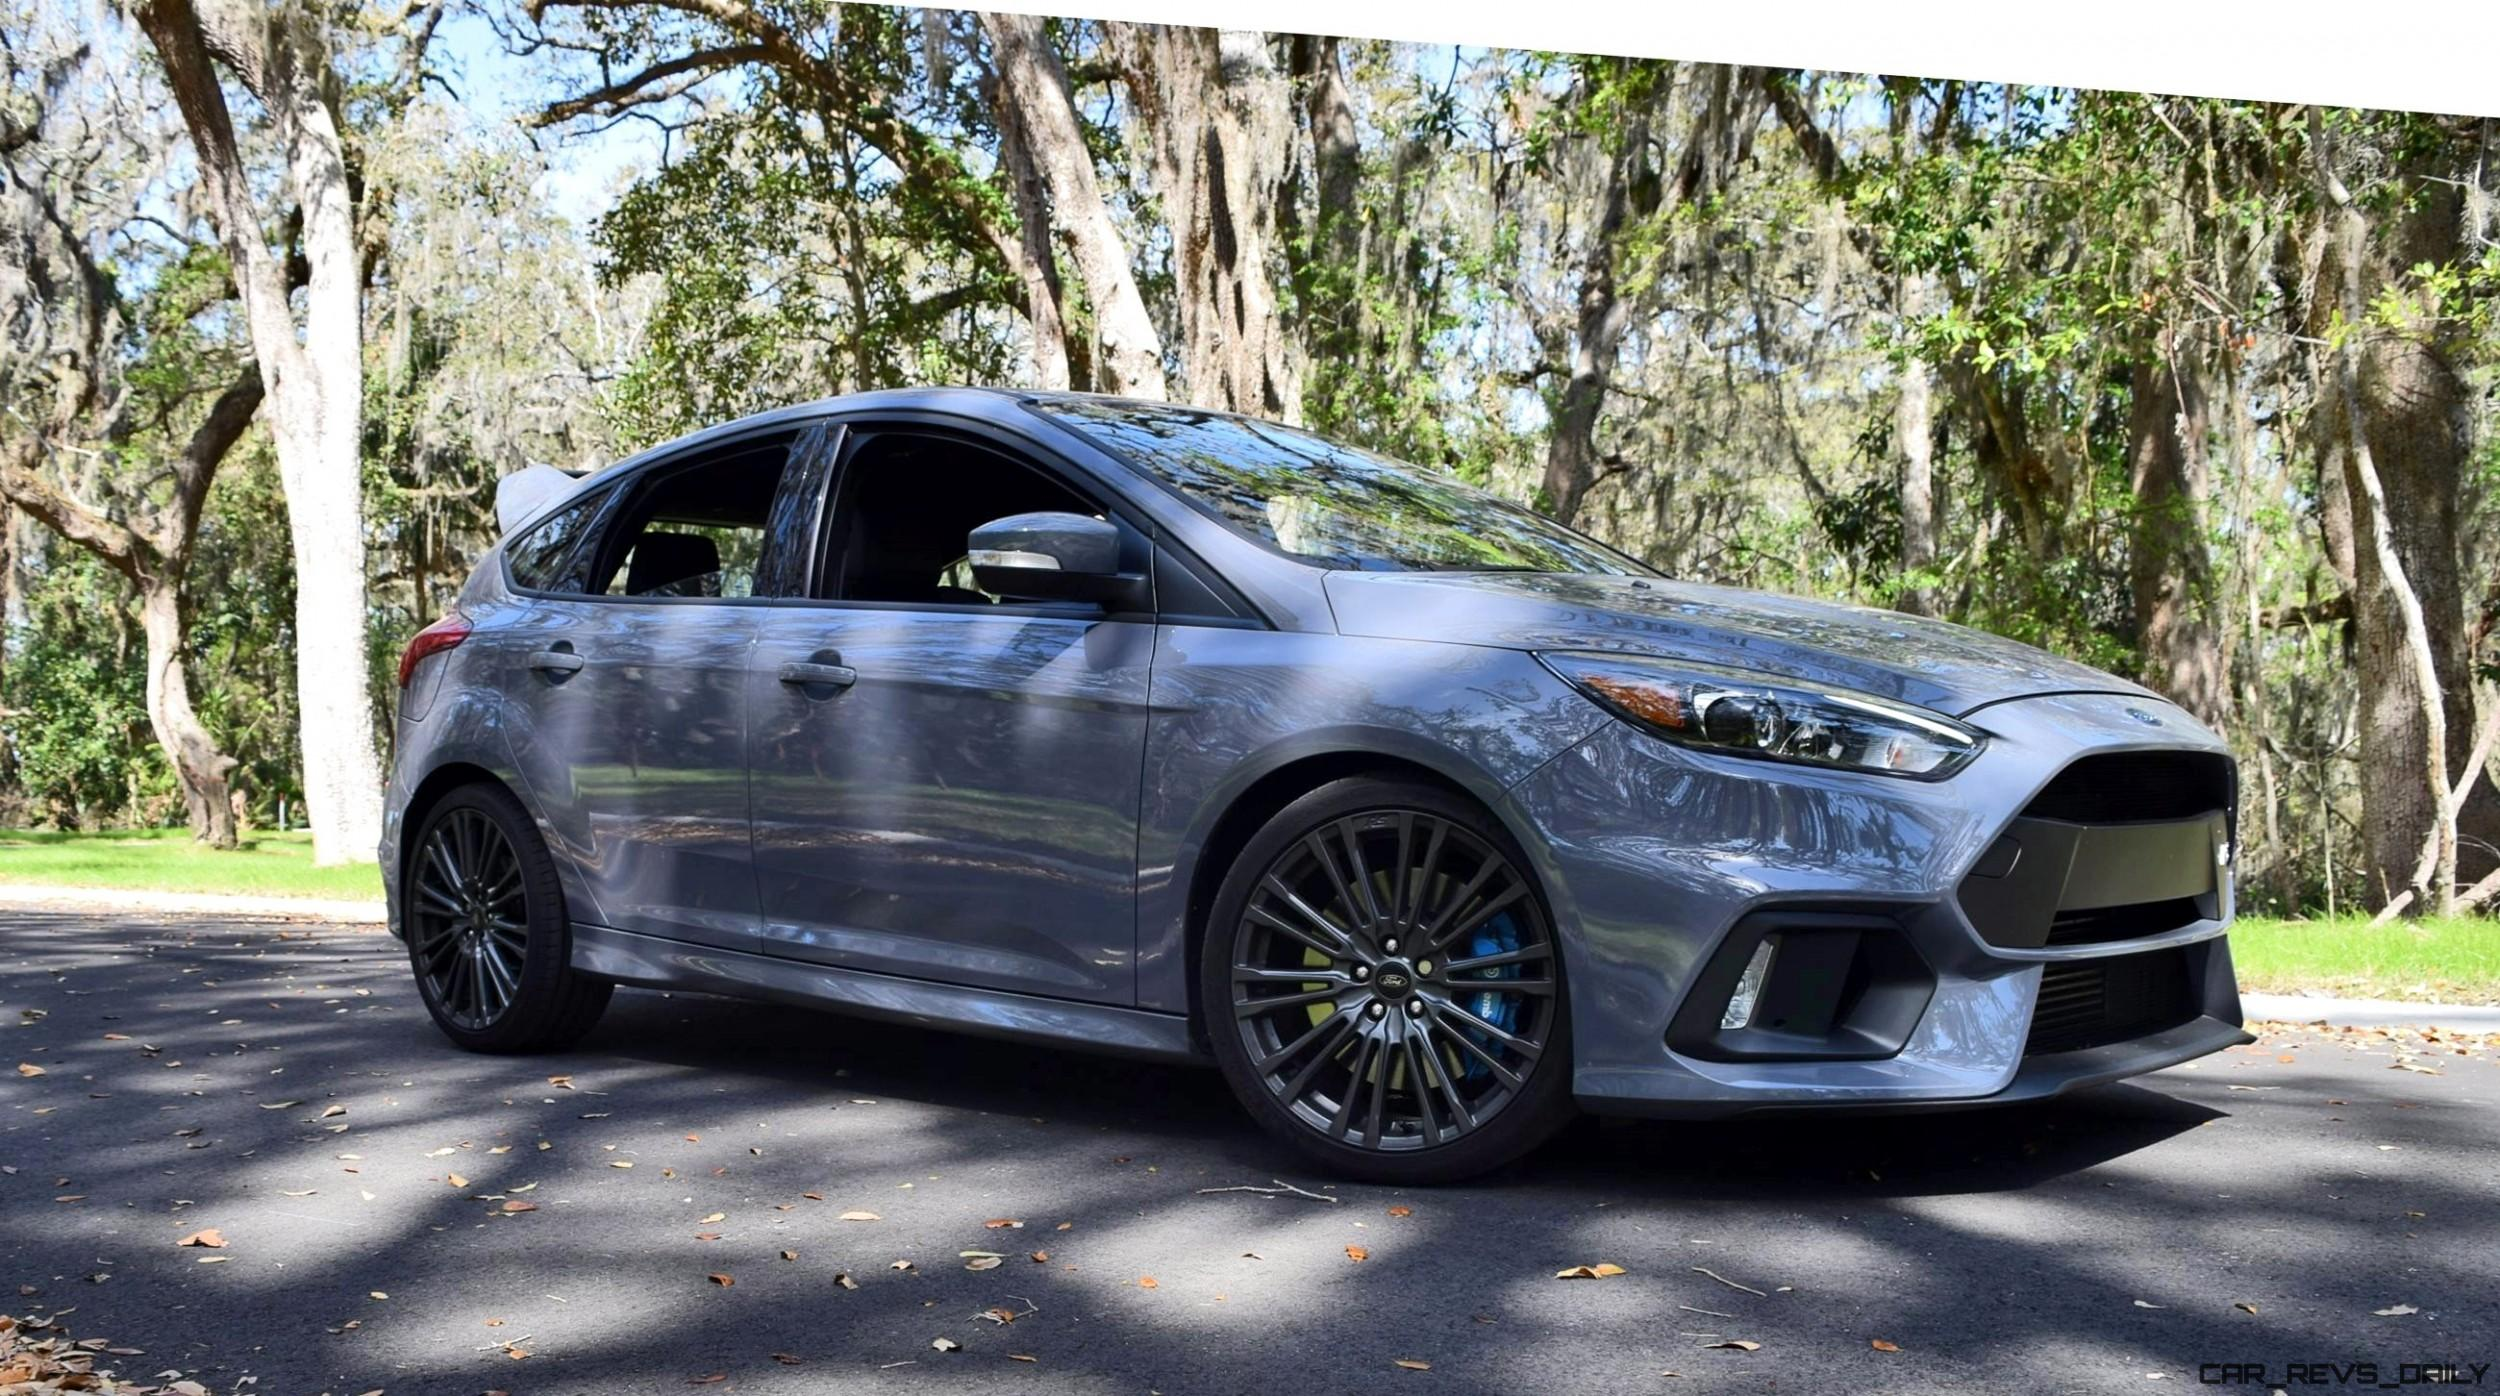 Rs Schnitzer Home Design 2017 ford focus rs stealth grey 10